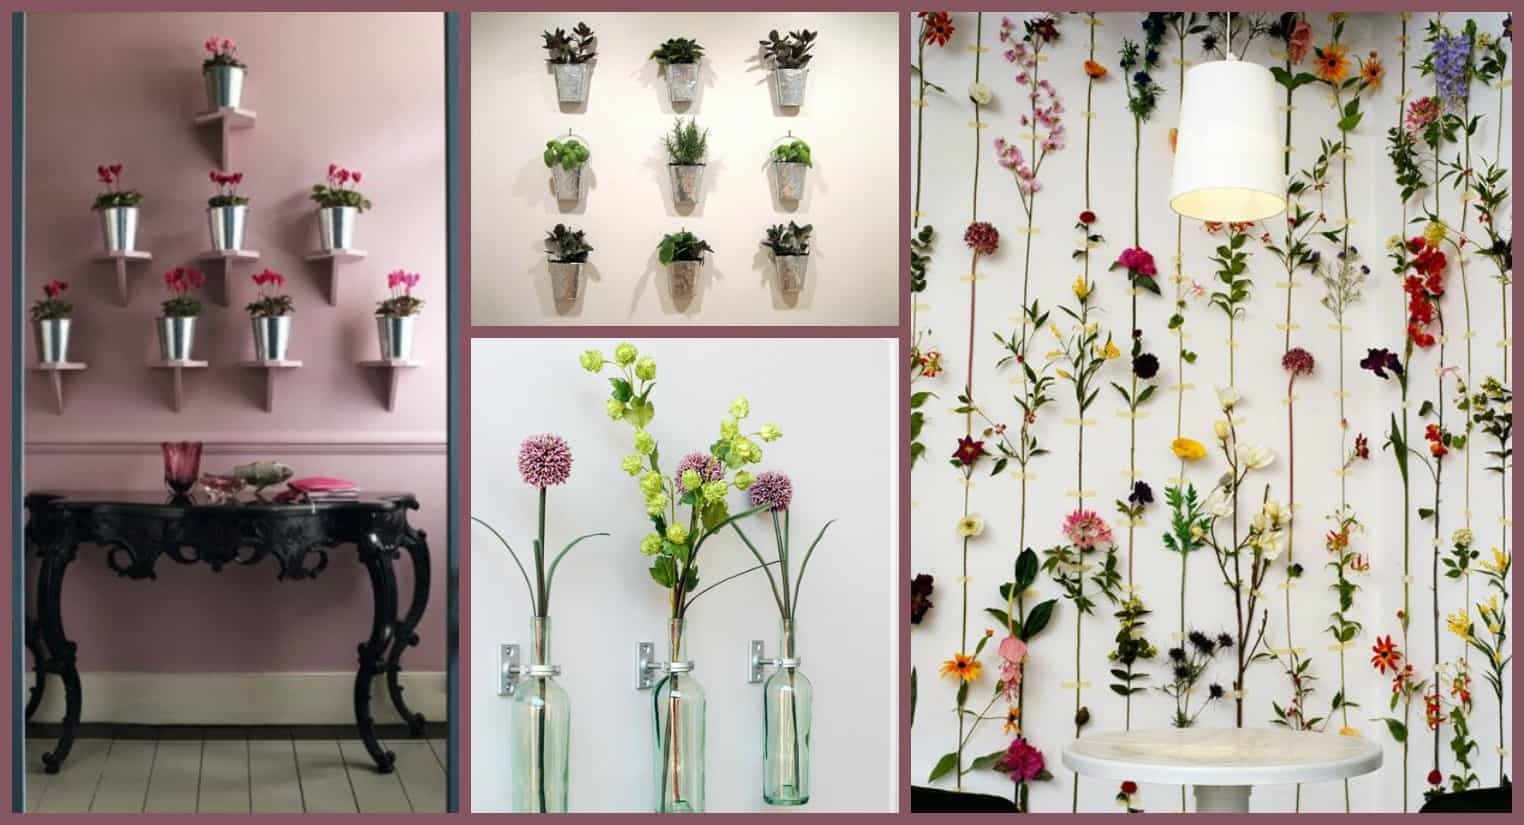 Diy 10 idee su come decorare una parete di casa - Decorazioni muro ...